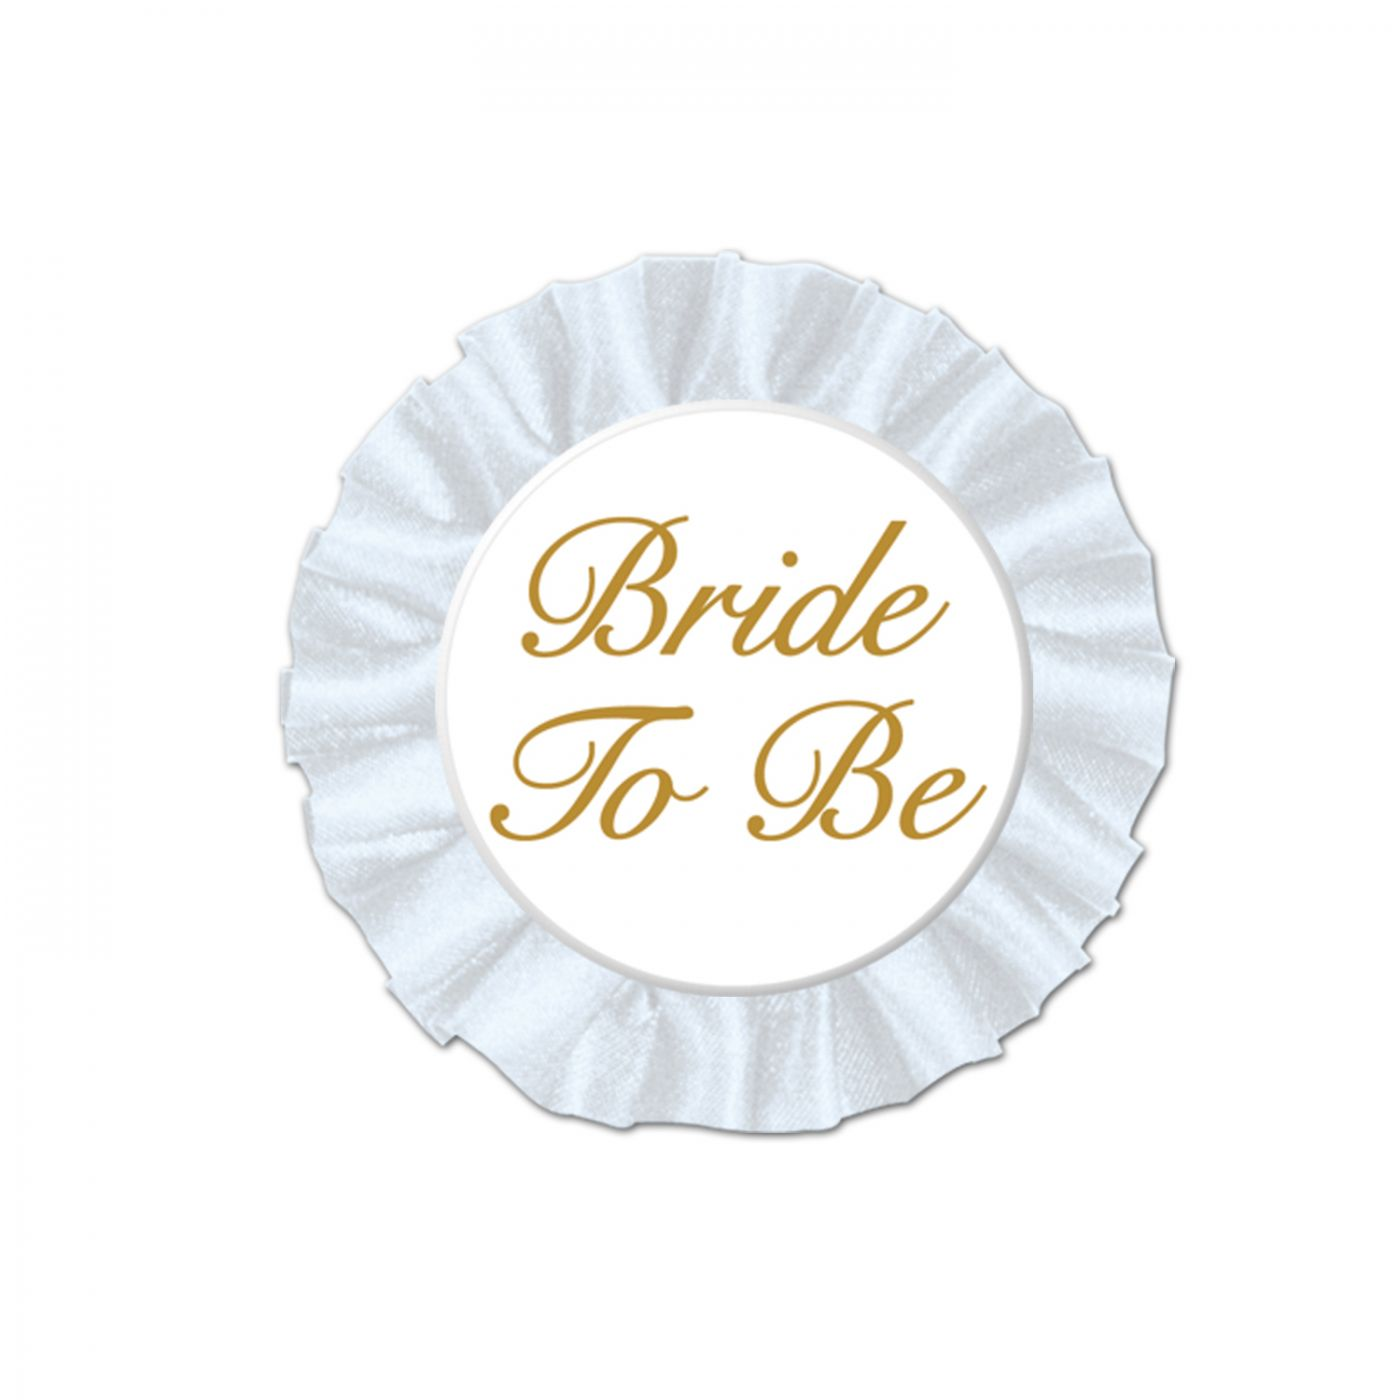 Bride To Be Satin Button image